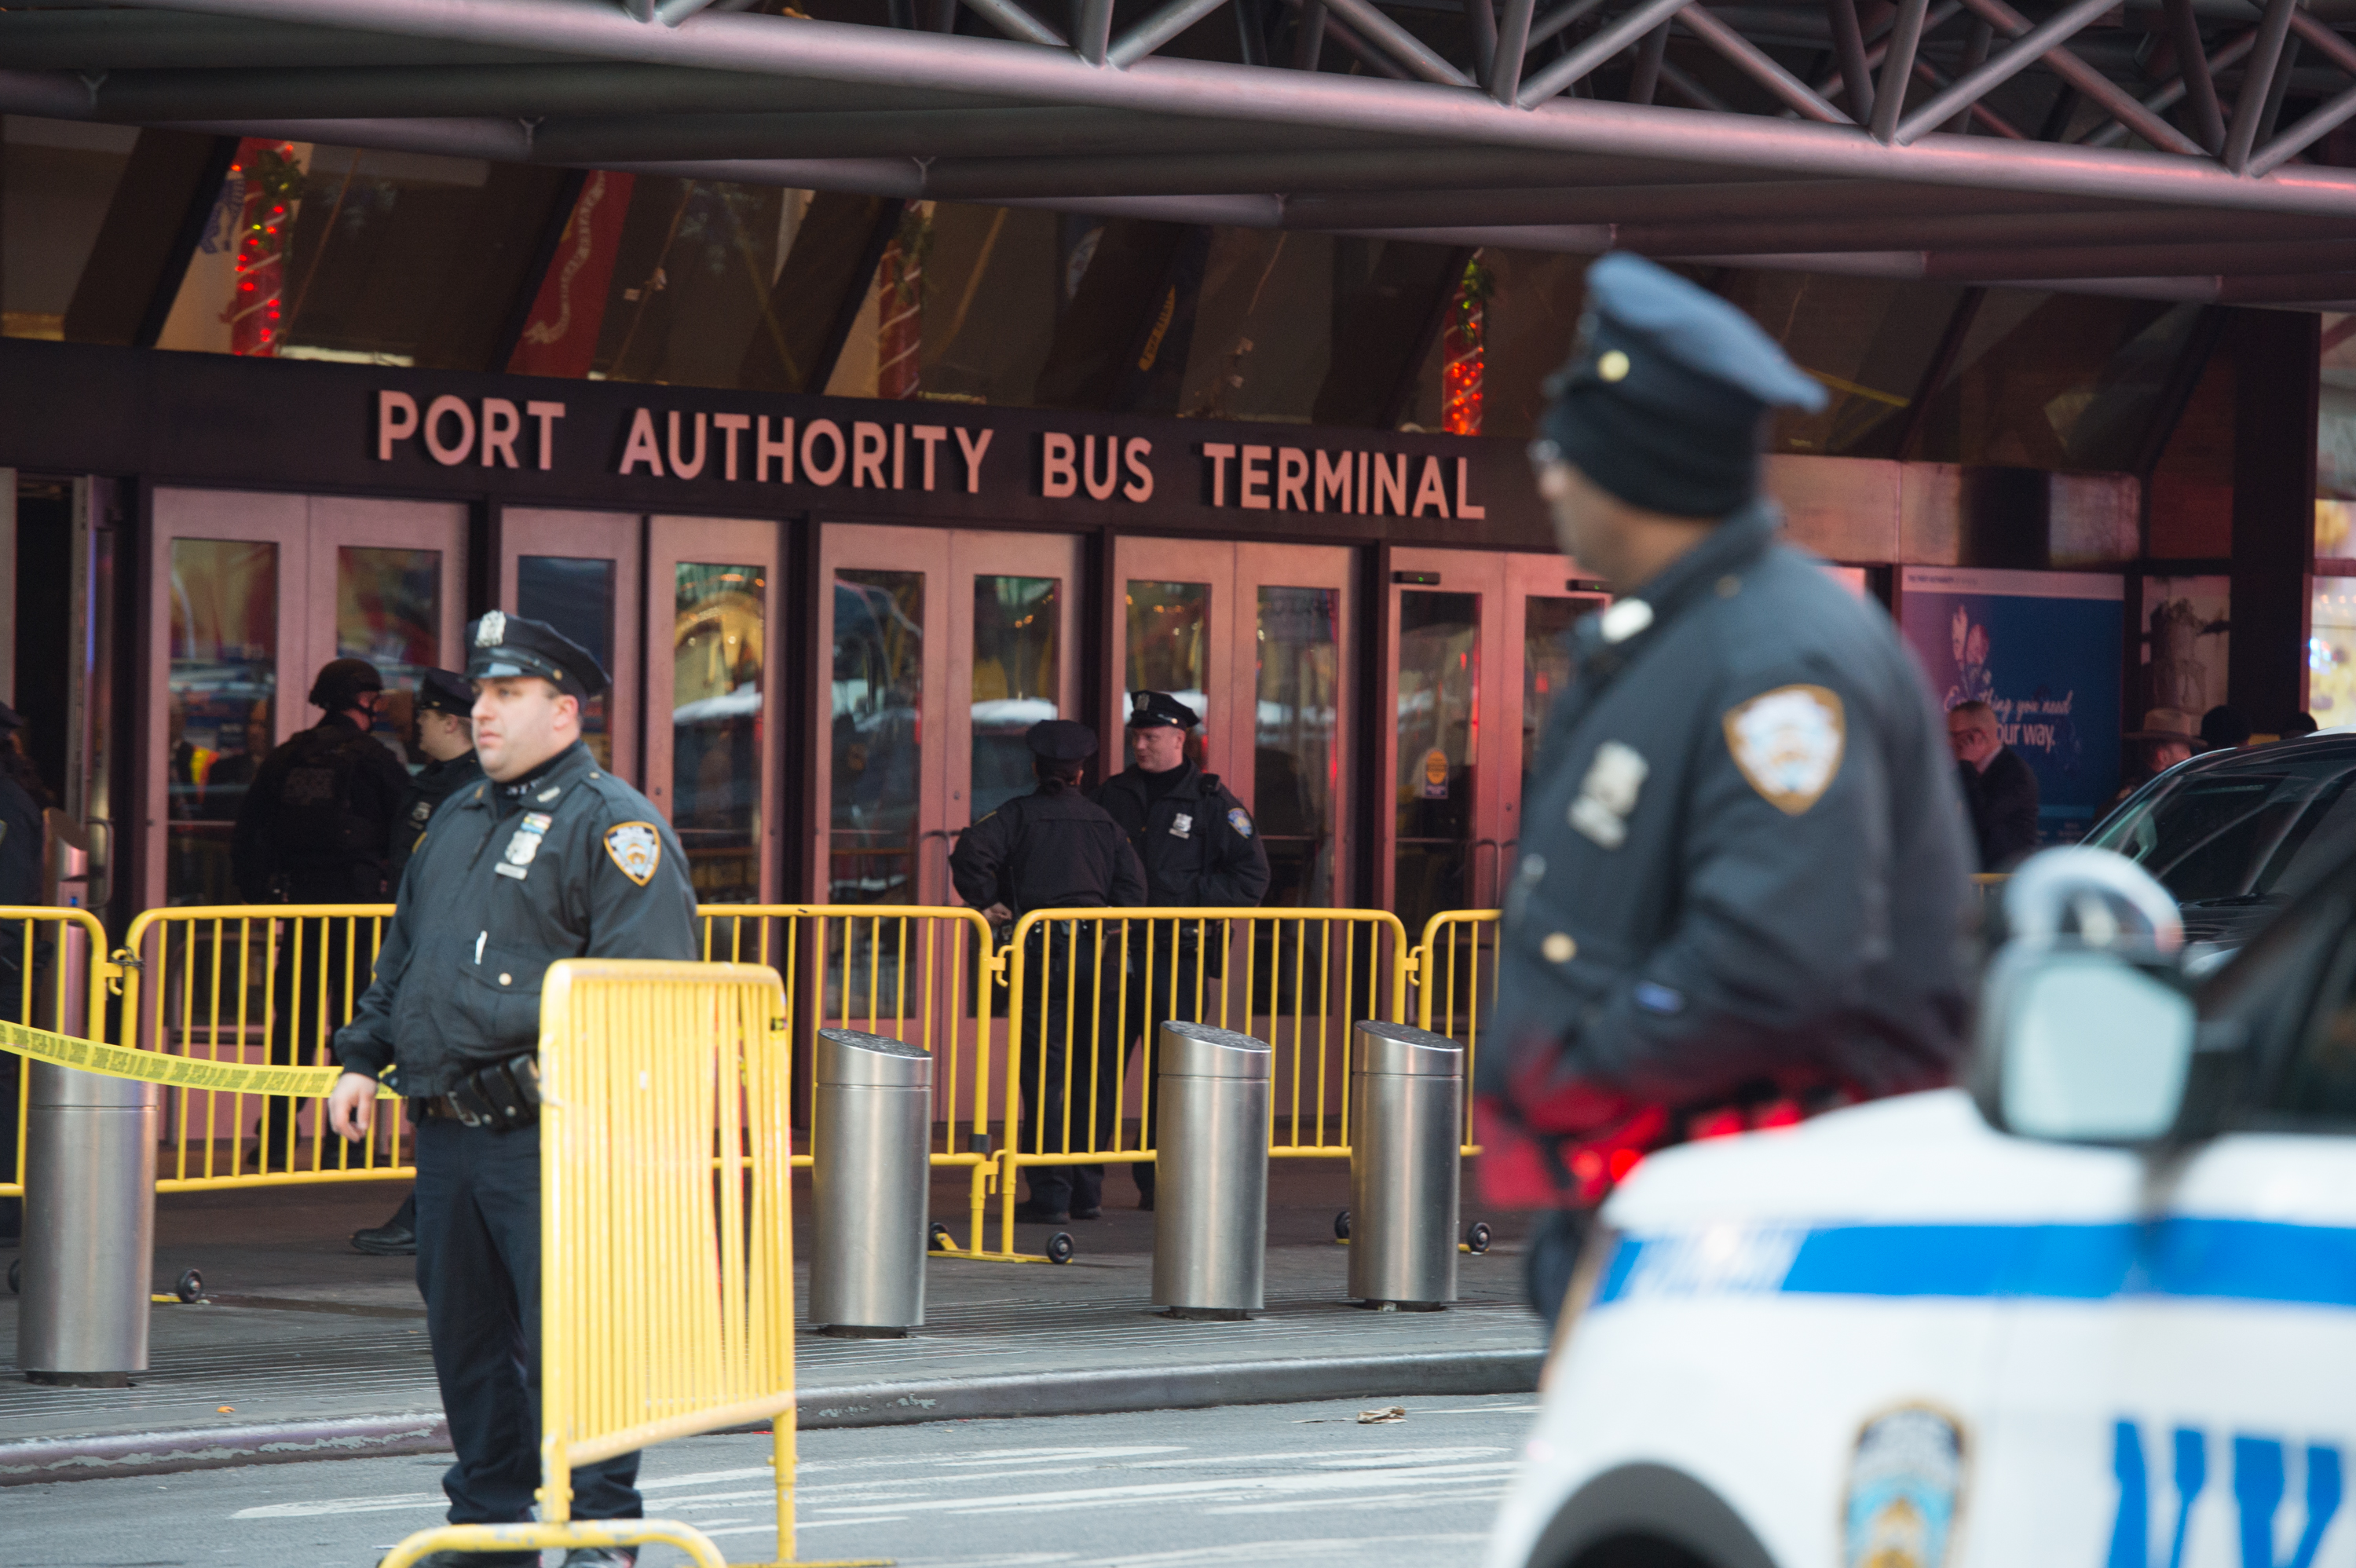 Police respond to a reported explosion at the Port Authority Bus Terminal on December 11, 2017 in New York.